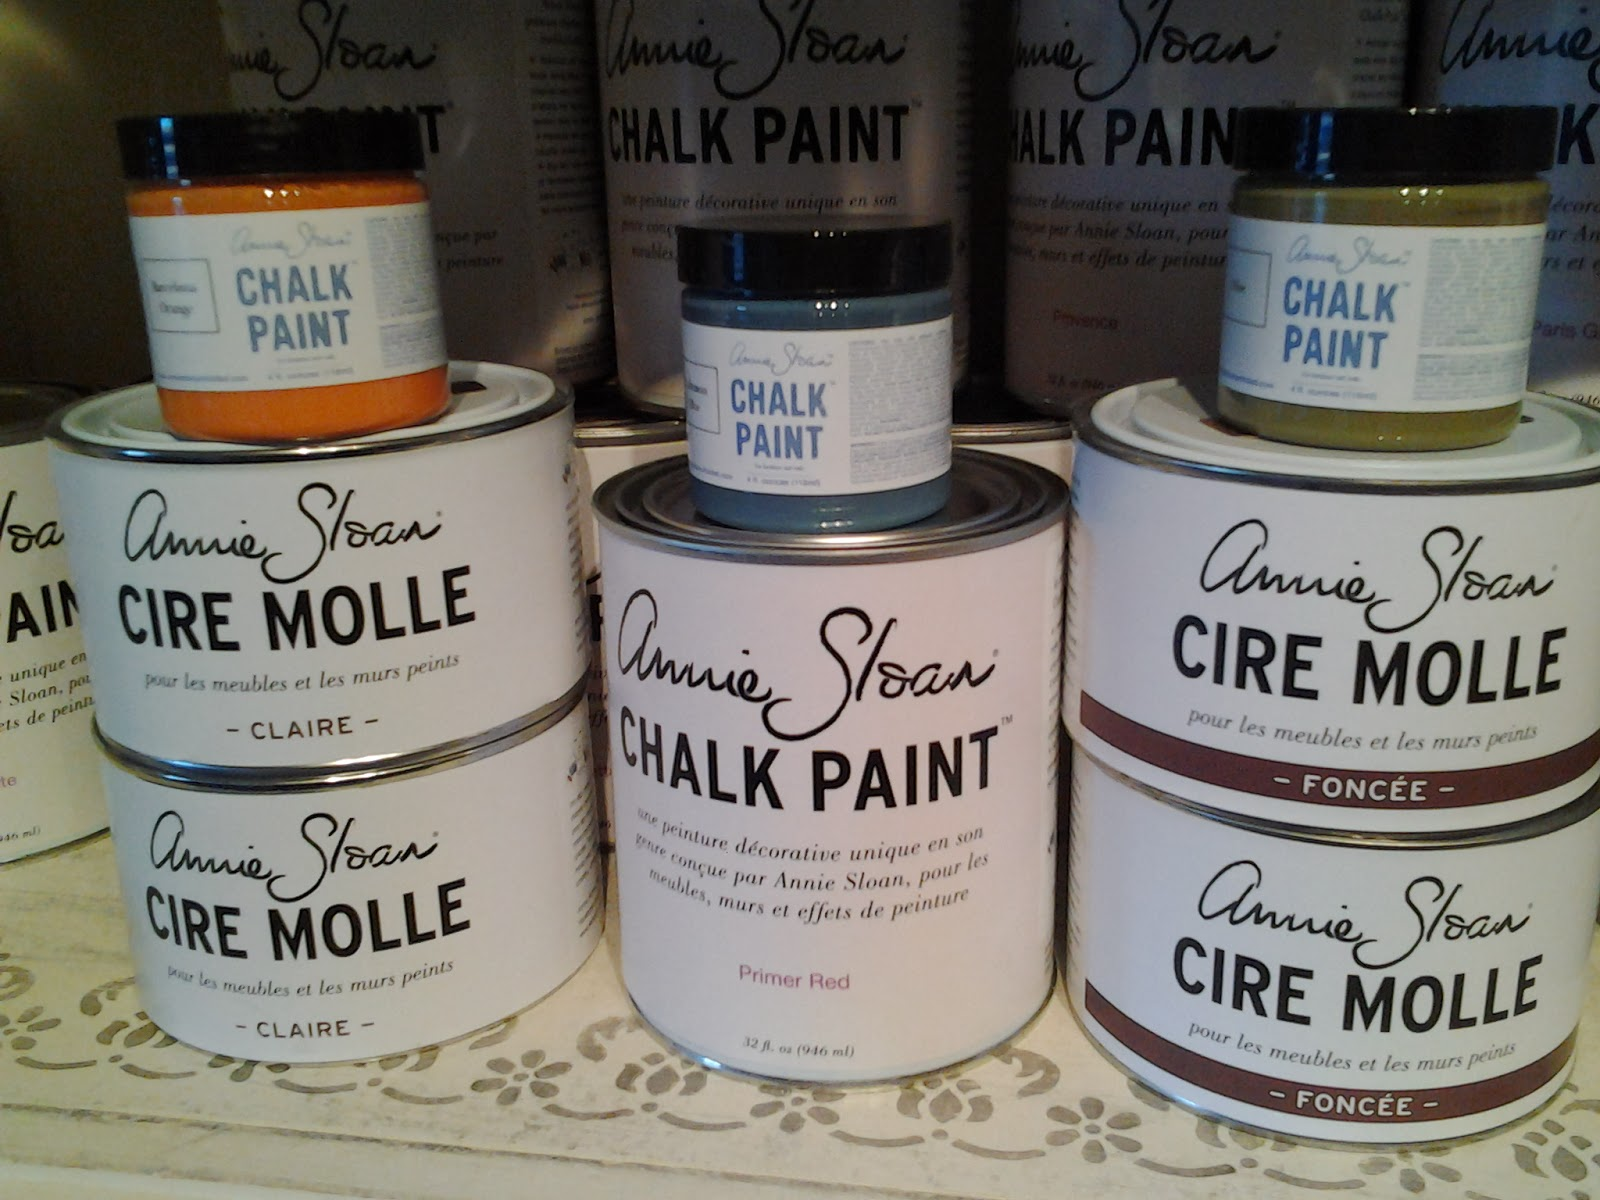 peinture chalk paint d 39 annie sloan chalk paint est vendu chez peintre de l illusion. Black Bedroom Furniture Sets. Home Design Ideas